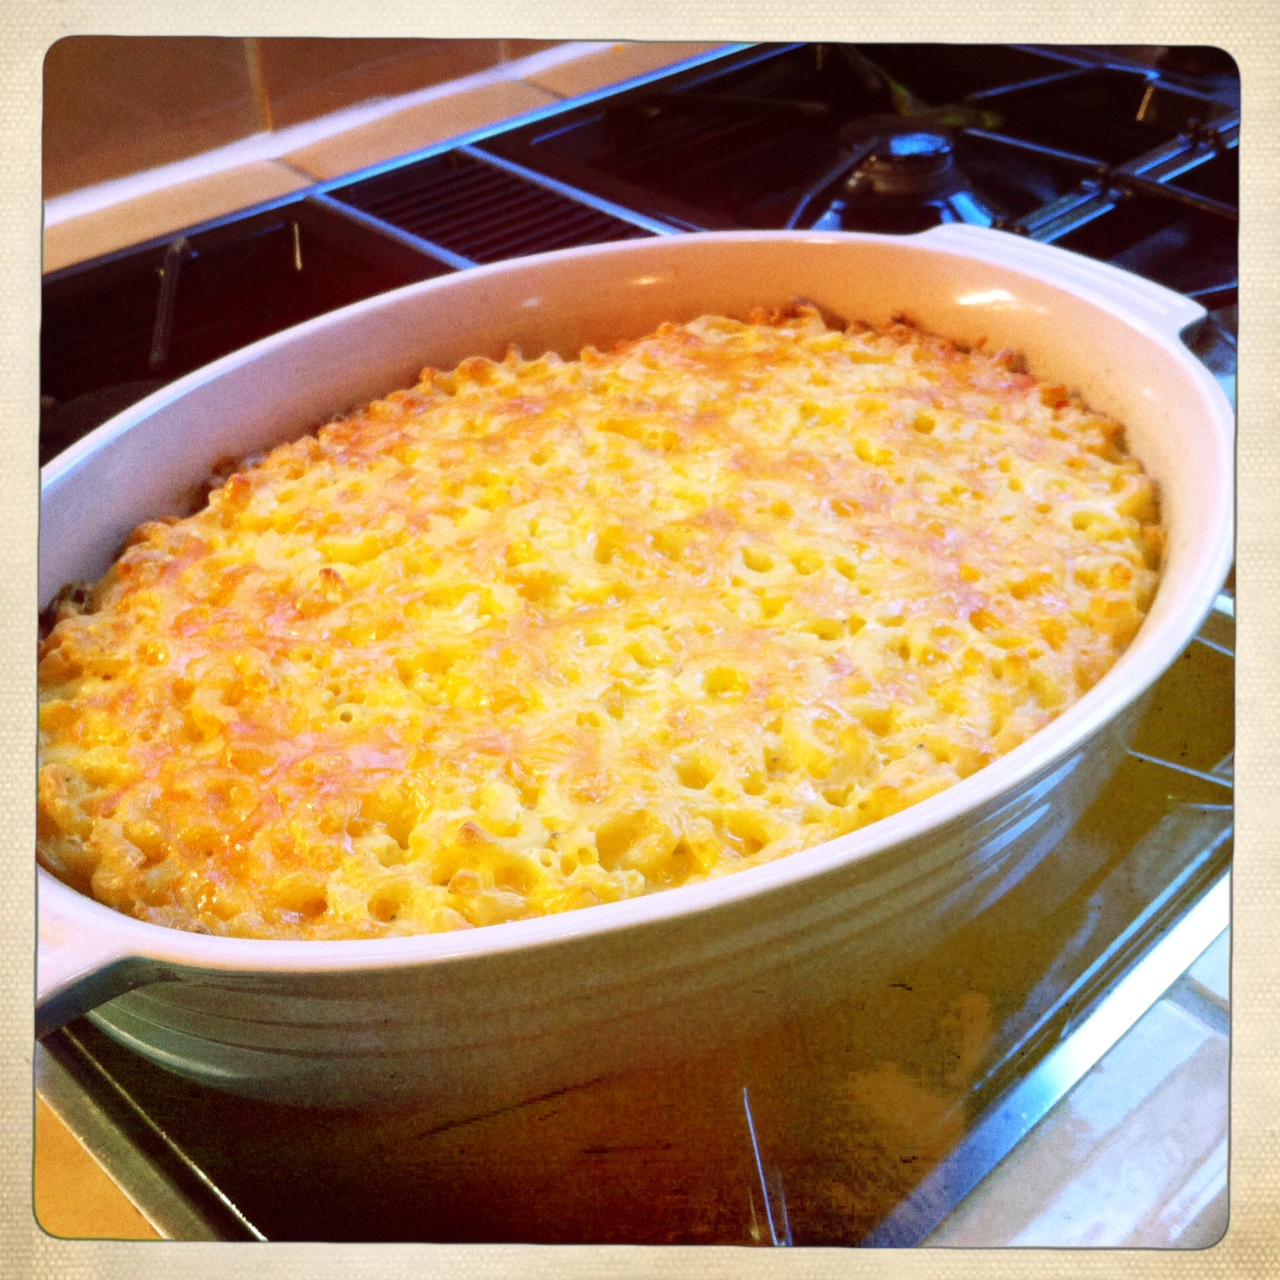 The meat and potatoes foodie pioneer woman 39 s mac and cheese for Pioneer woman macaroni and cheese recipe